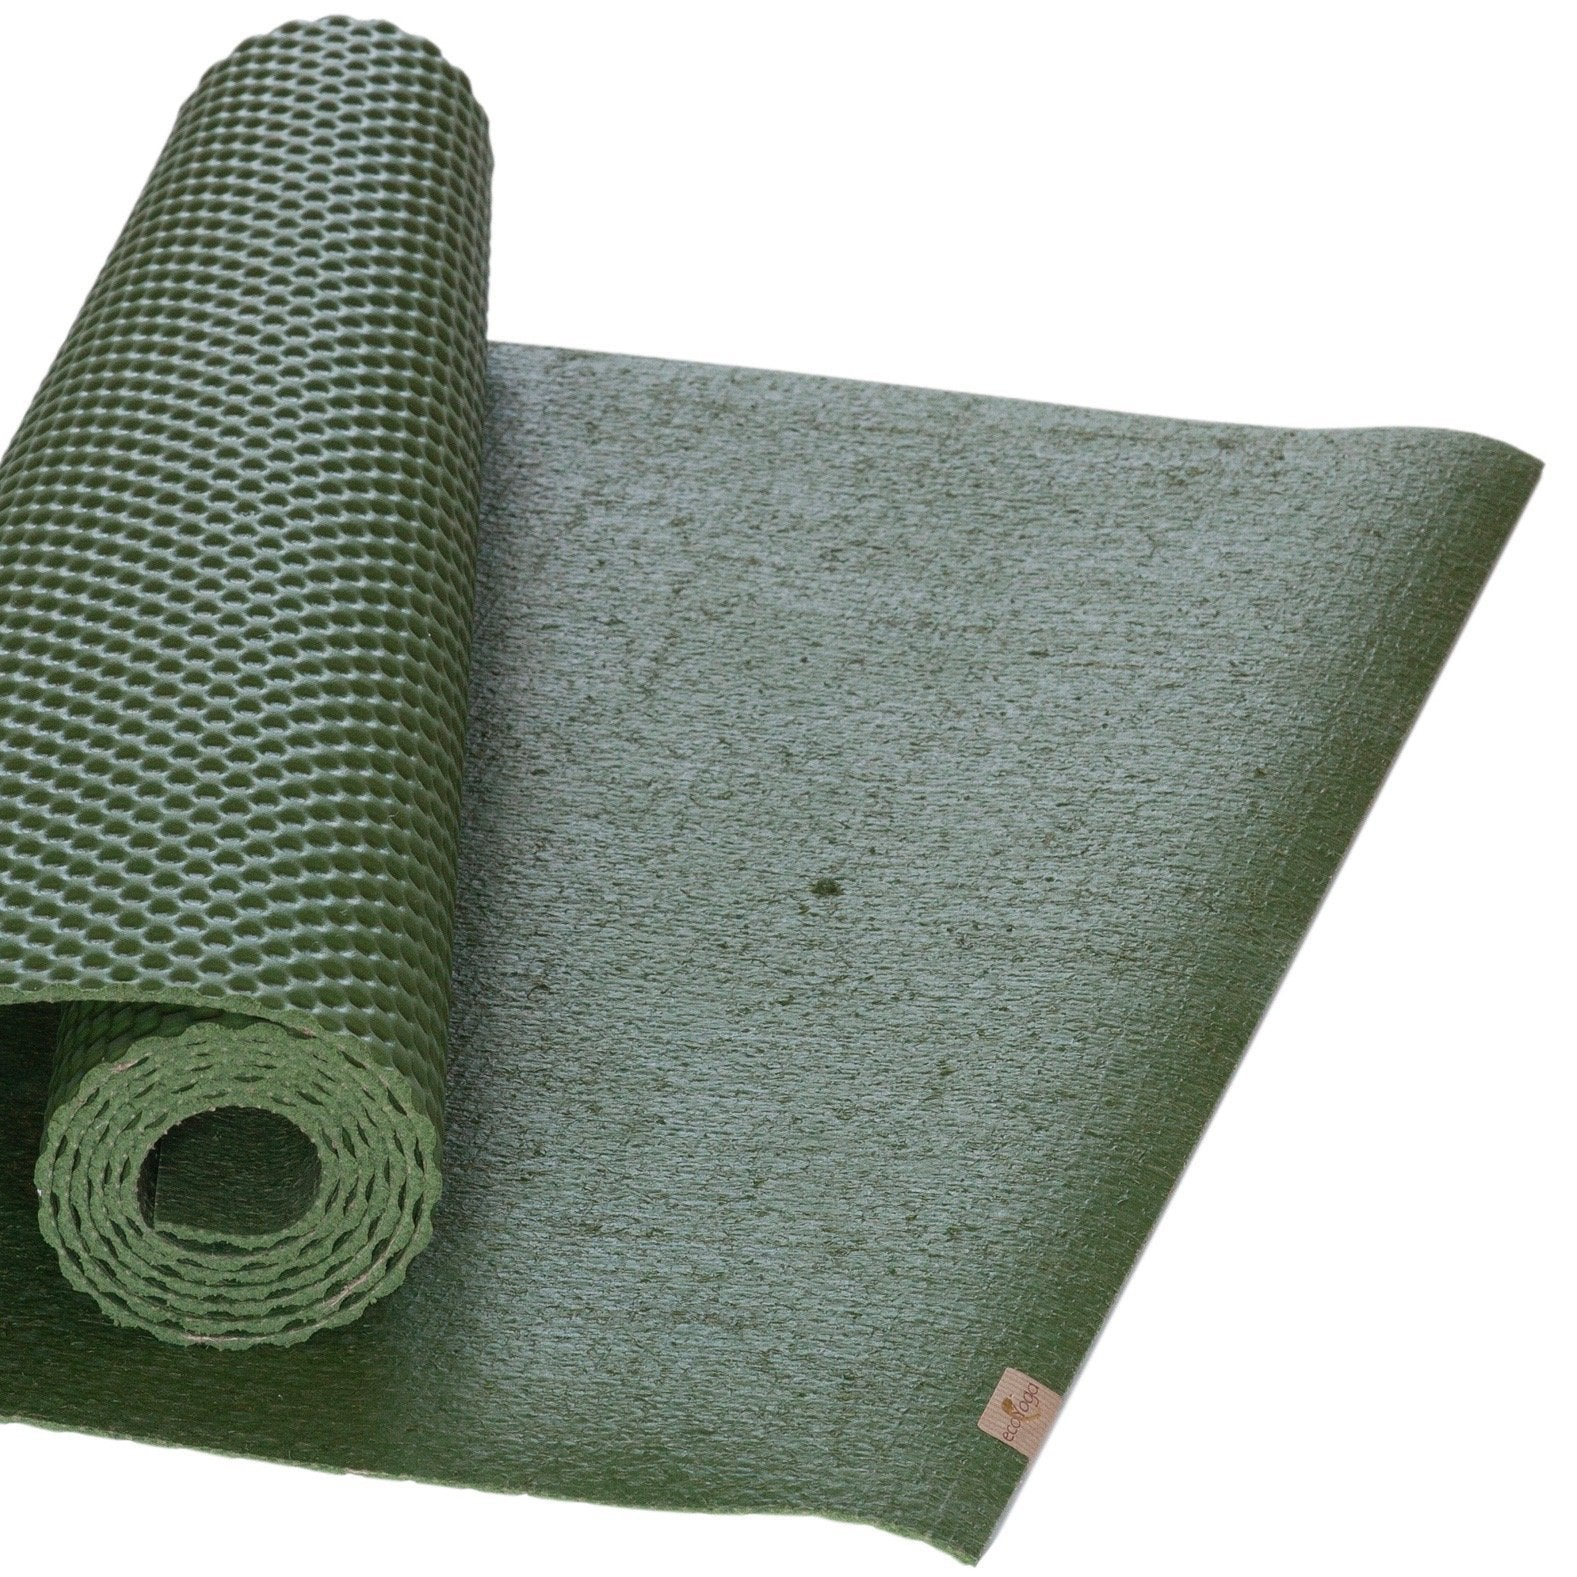 ecoYoga Mat - A Little Longer